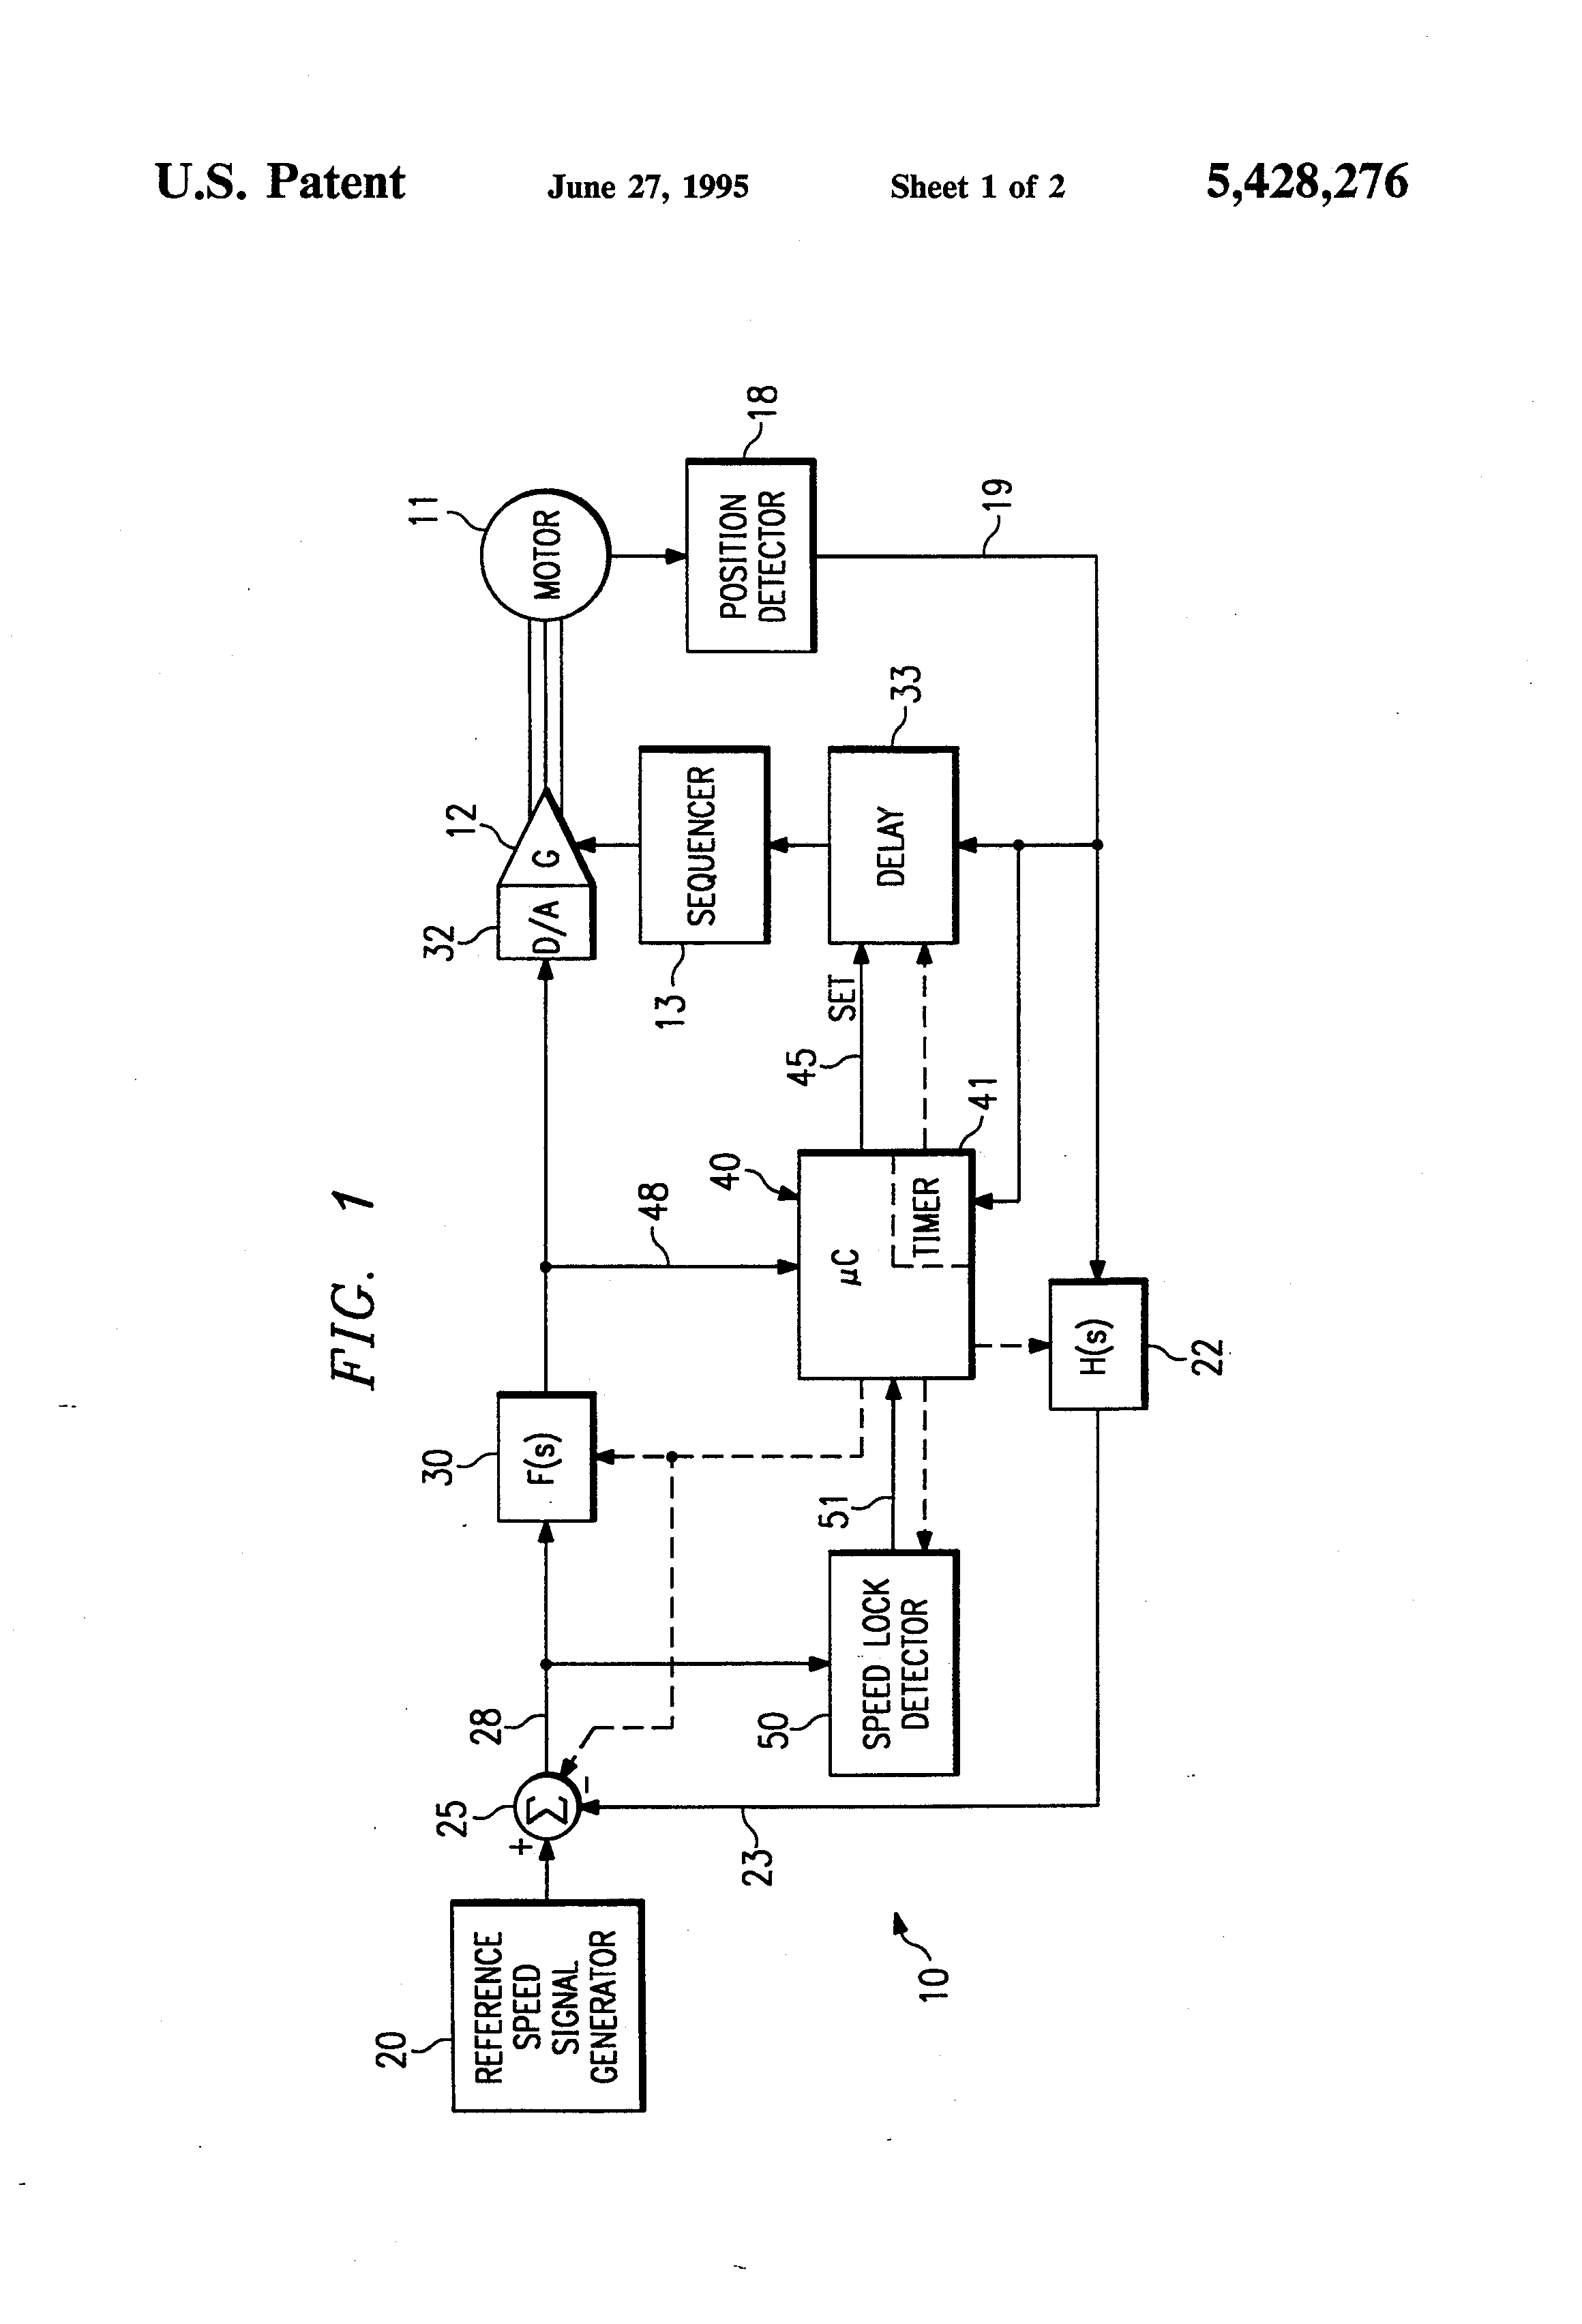 Patent Us5428276 Automatic Adjustment Of Commutation Delay For Brushless Dc Motor Diagram Drawing